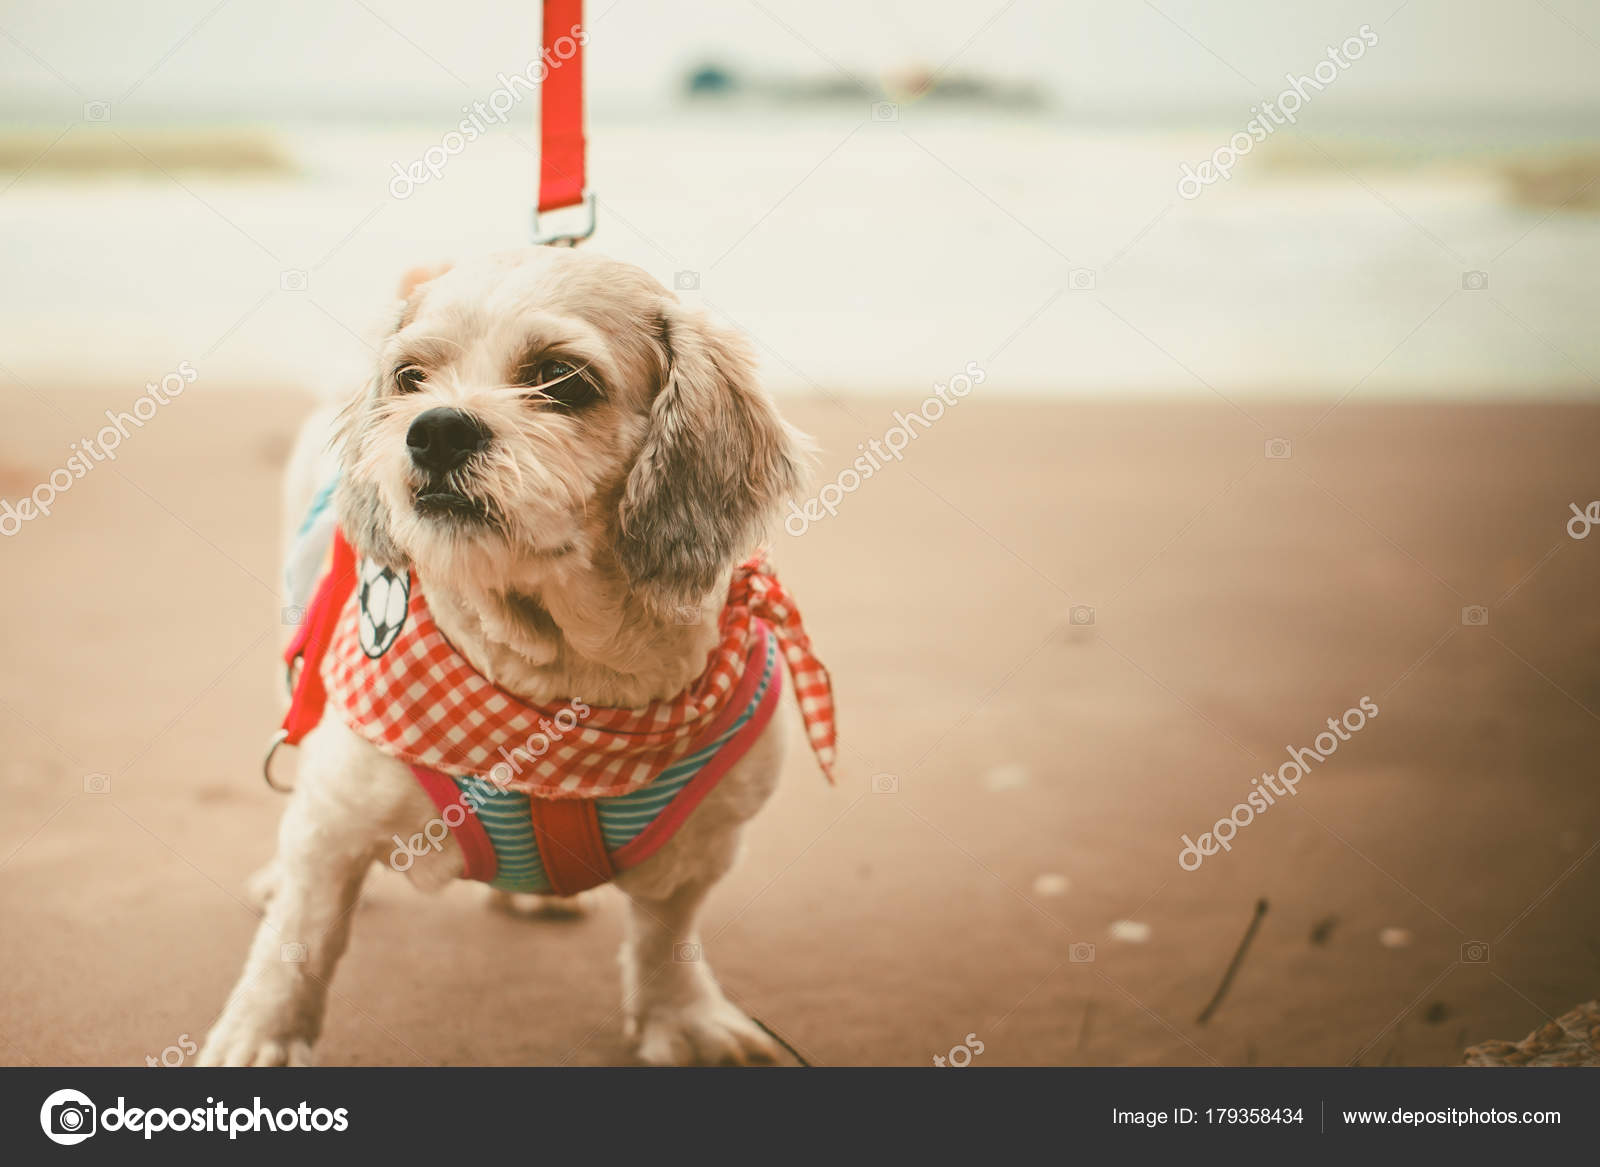 White Short Hair Shih Tzu Dog Cutely Clothes Red Leash Stock Photo